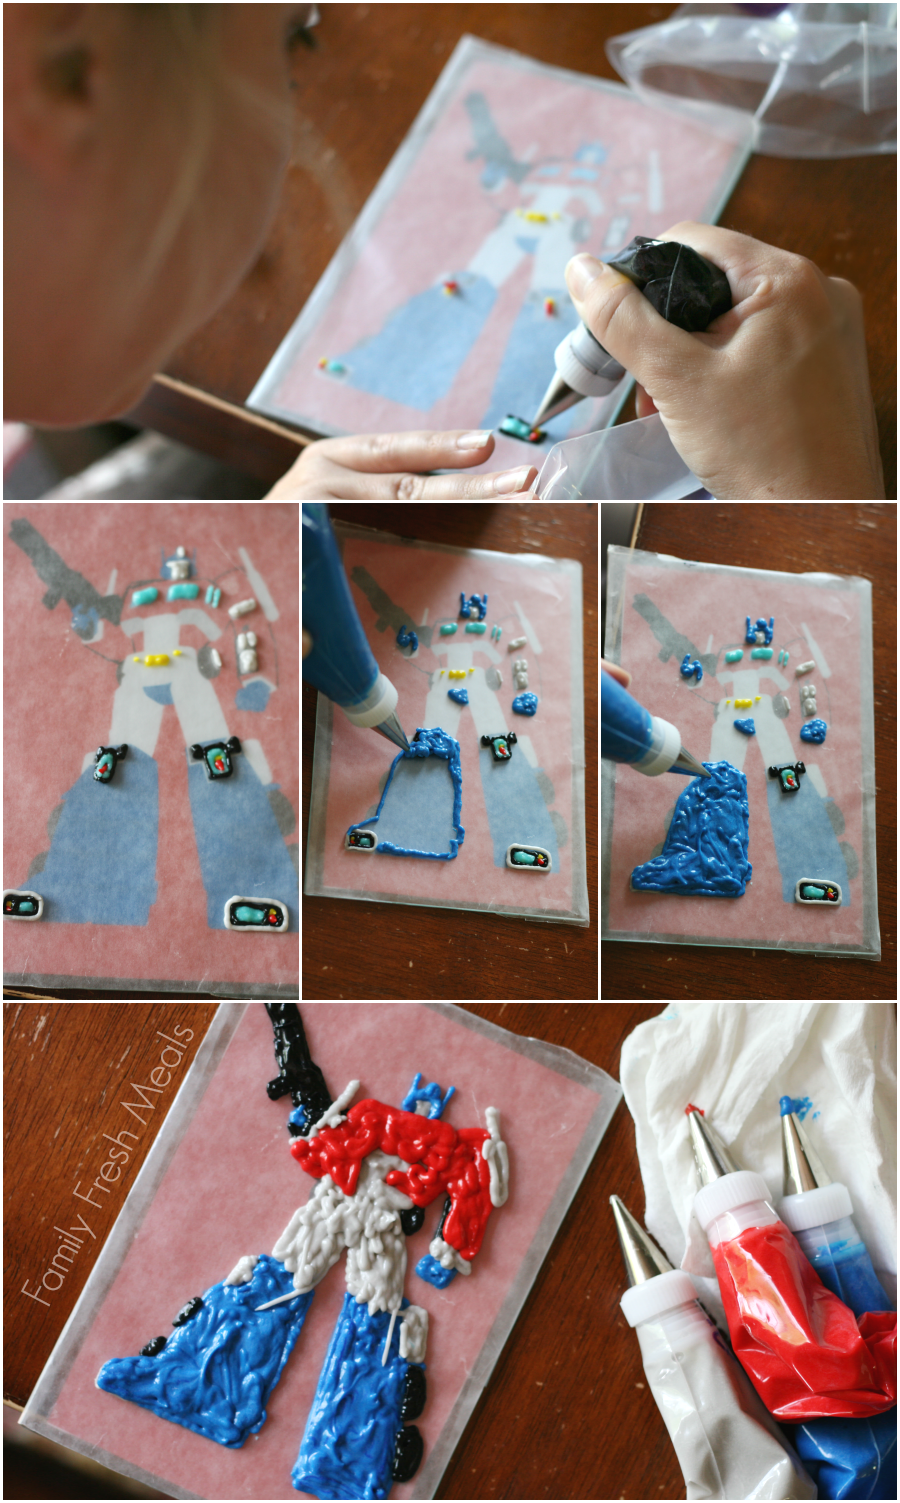 Easy Cake Decorations with Frosting Transfers - Step 1 - Trace frosting on wax paper